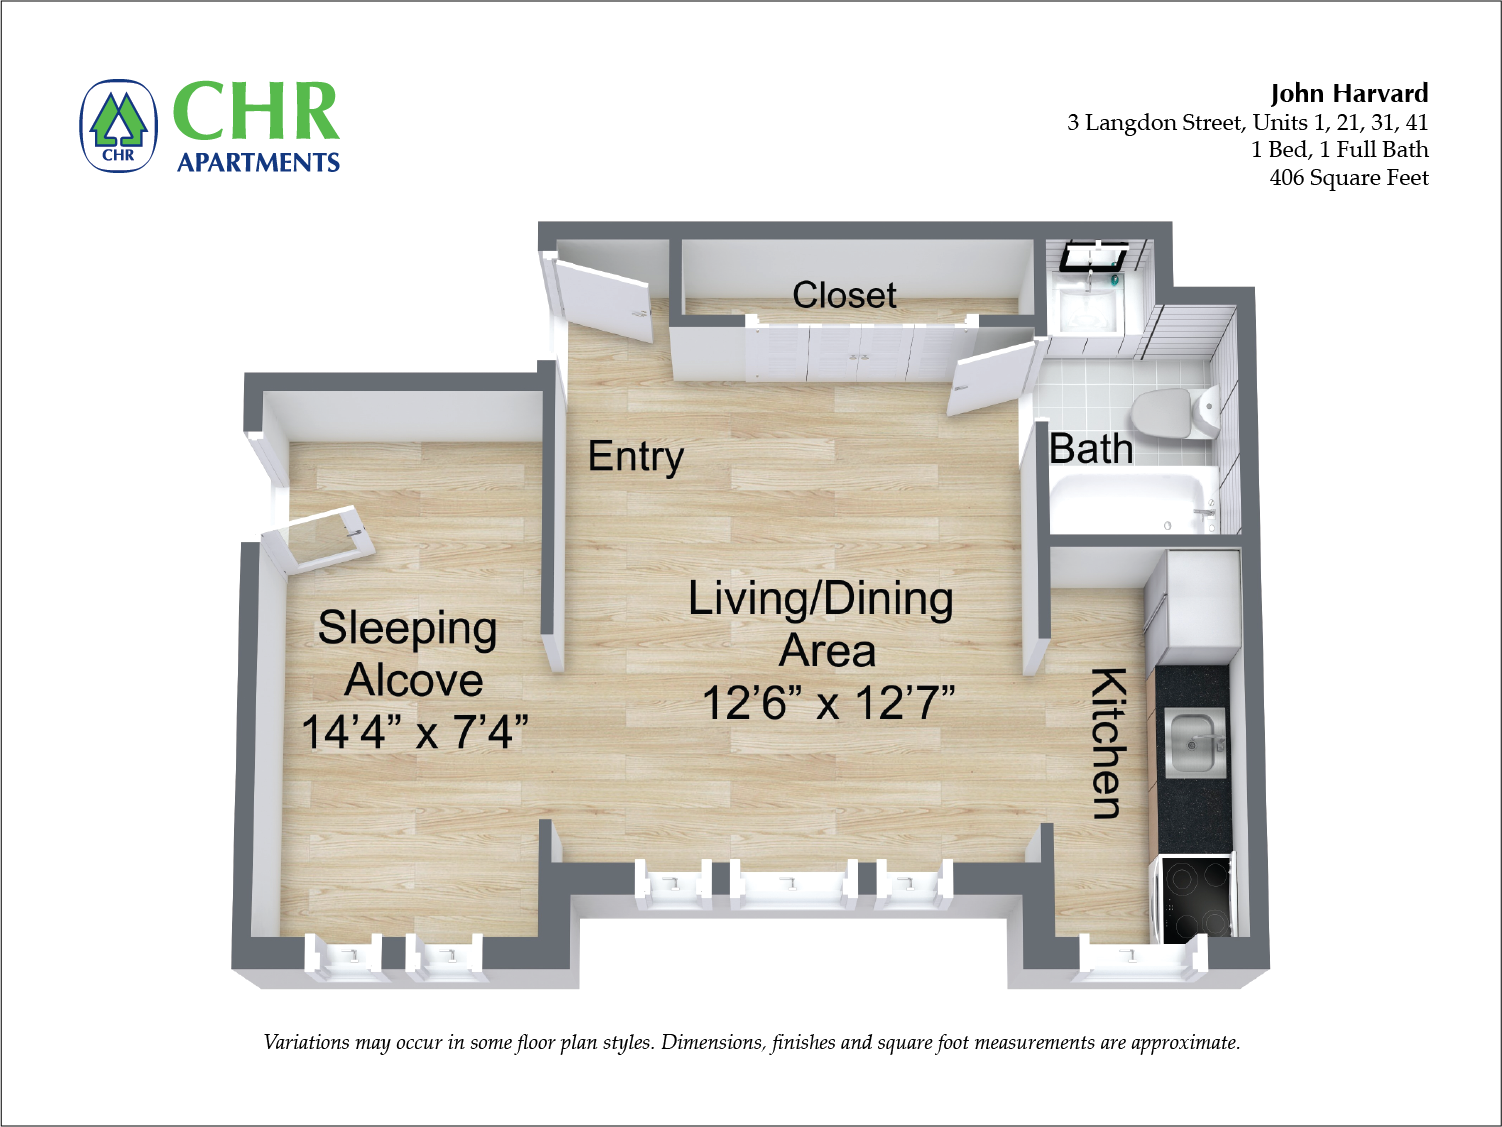 Floor plan 1 Bedroom image 10